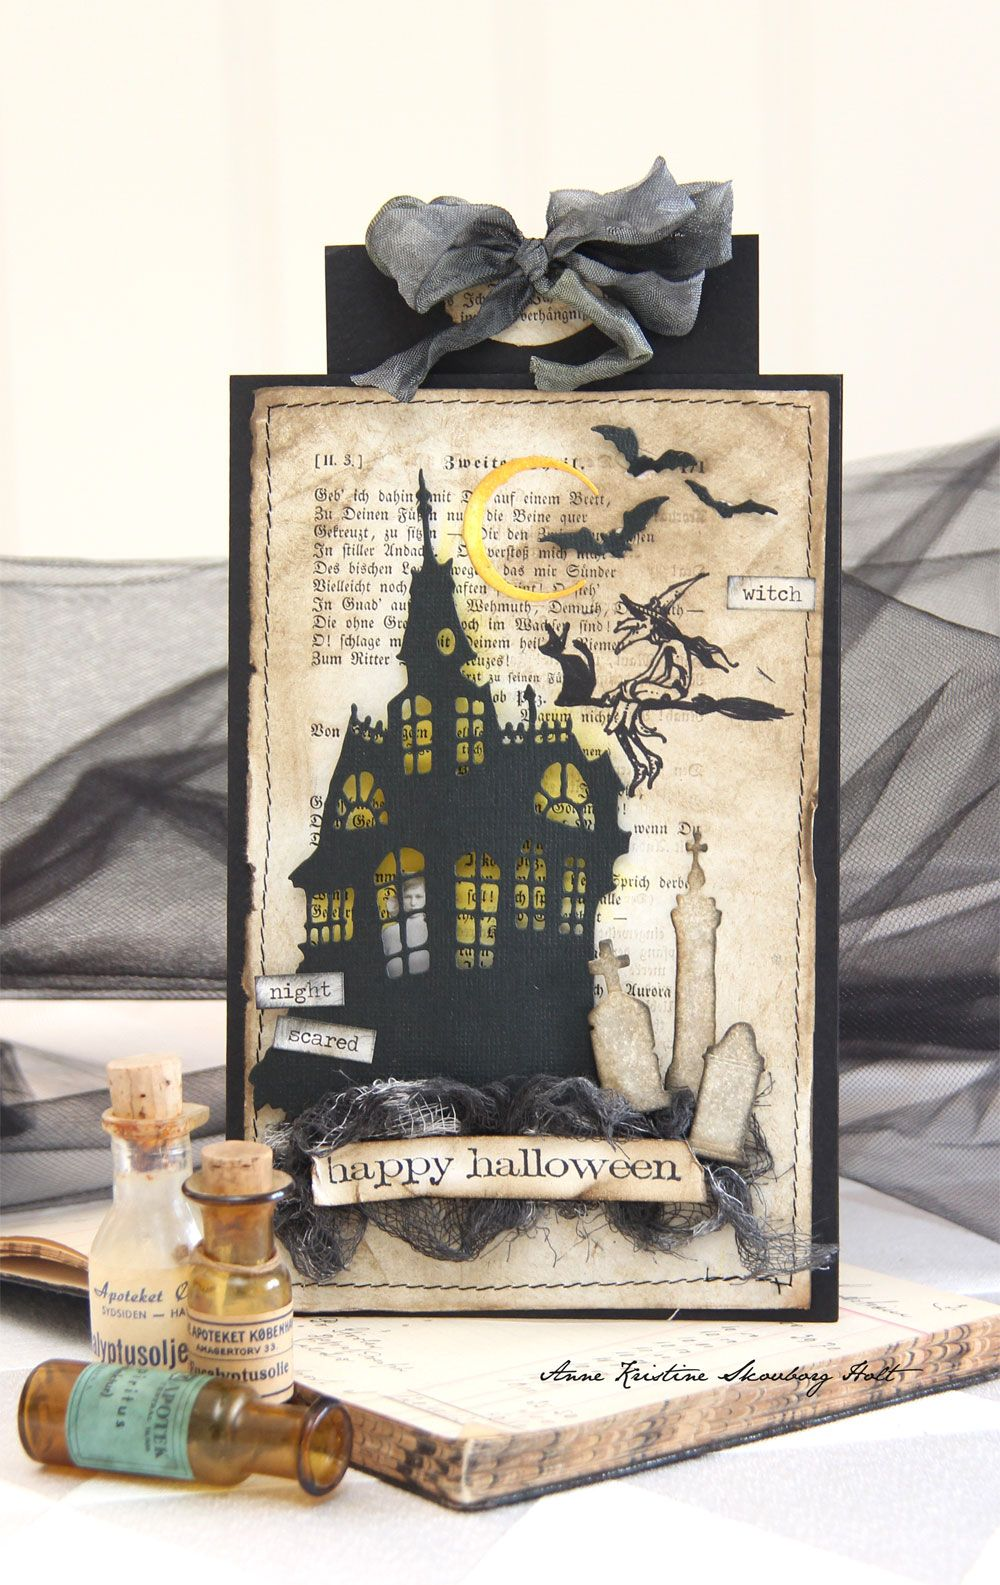 tim holtz haunted house die halloween card halloween pinterest karten basteln karten und holz. Black Bedroom Furniture Sets. Home Design Ideas